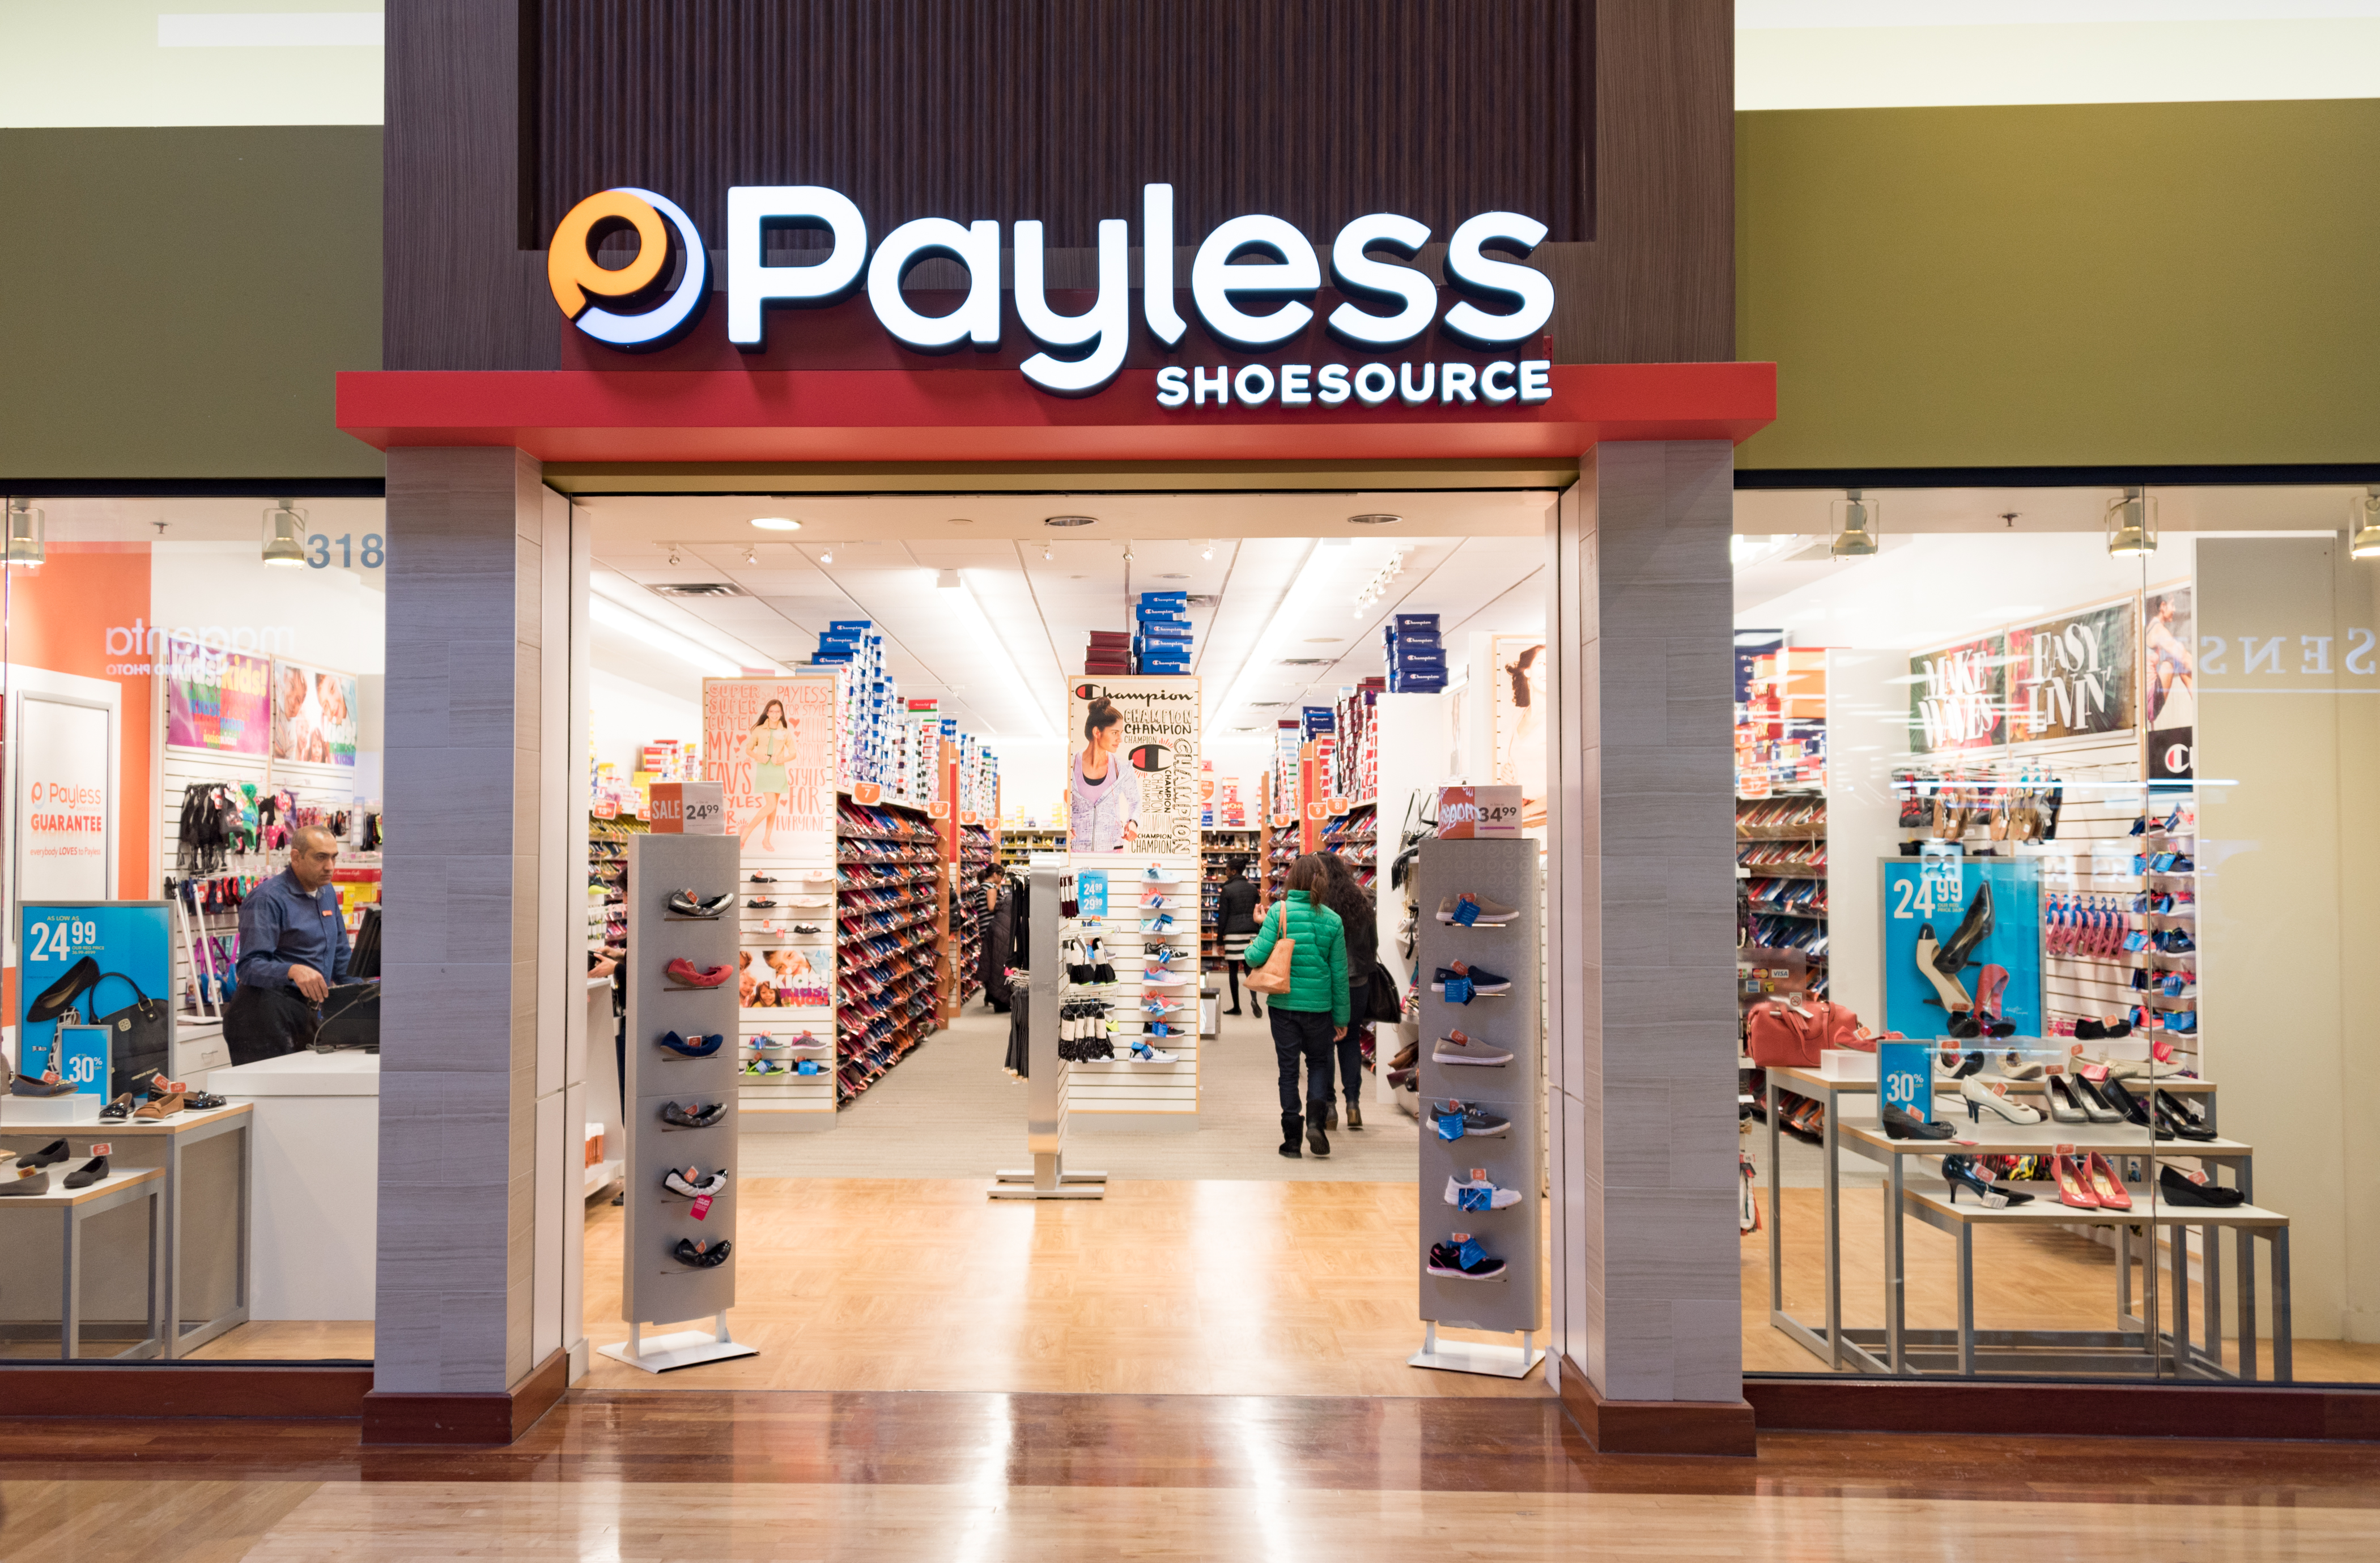 Payless is making a comeback after filing for bankruptcy twice